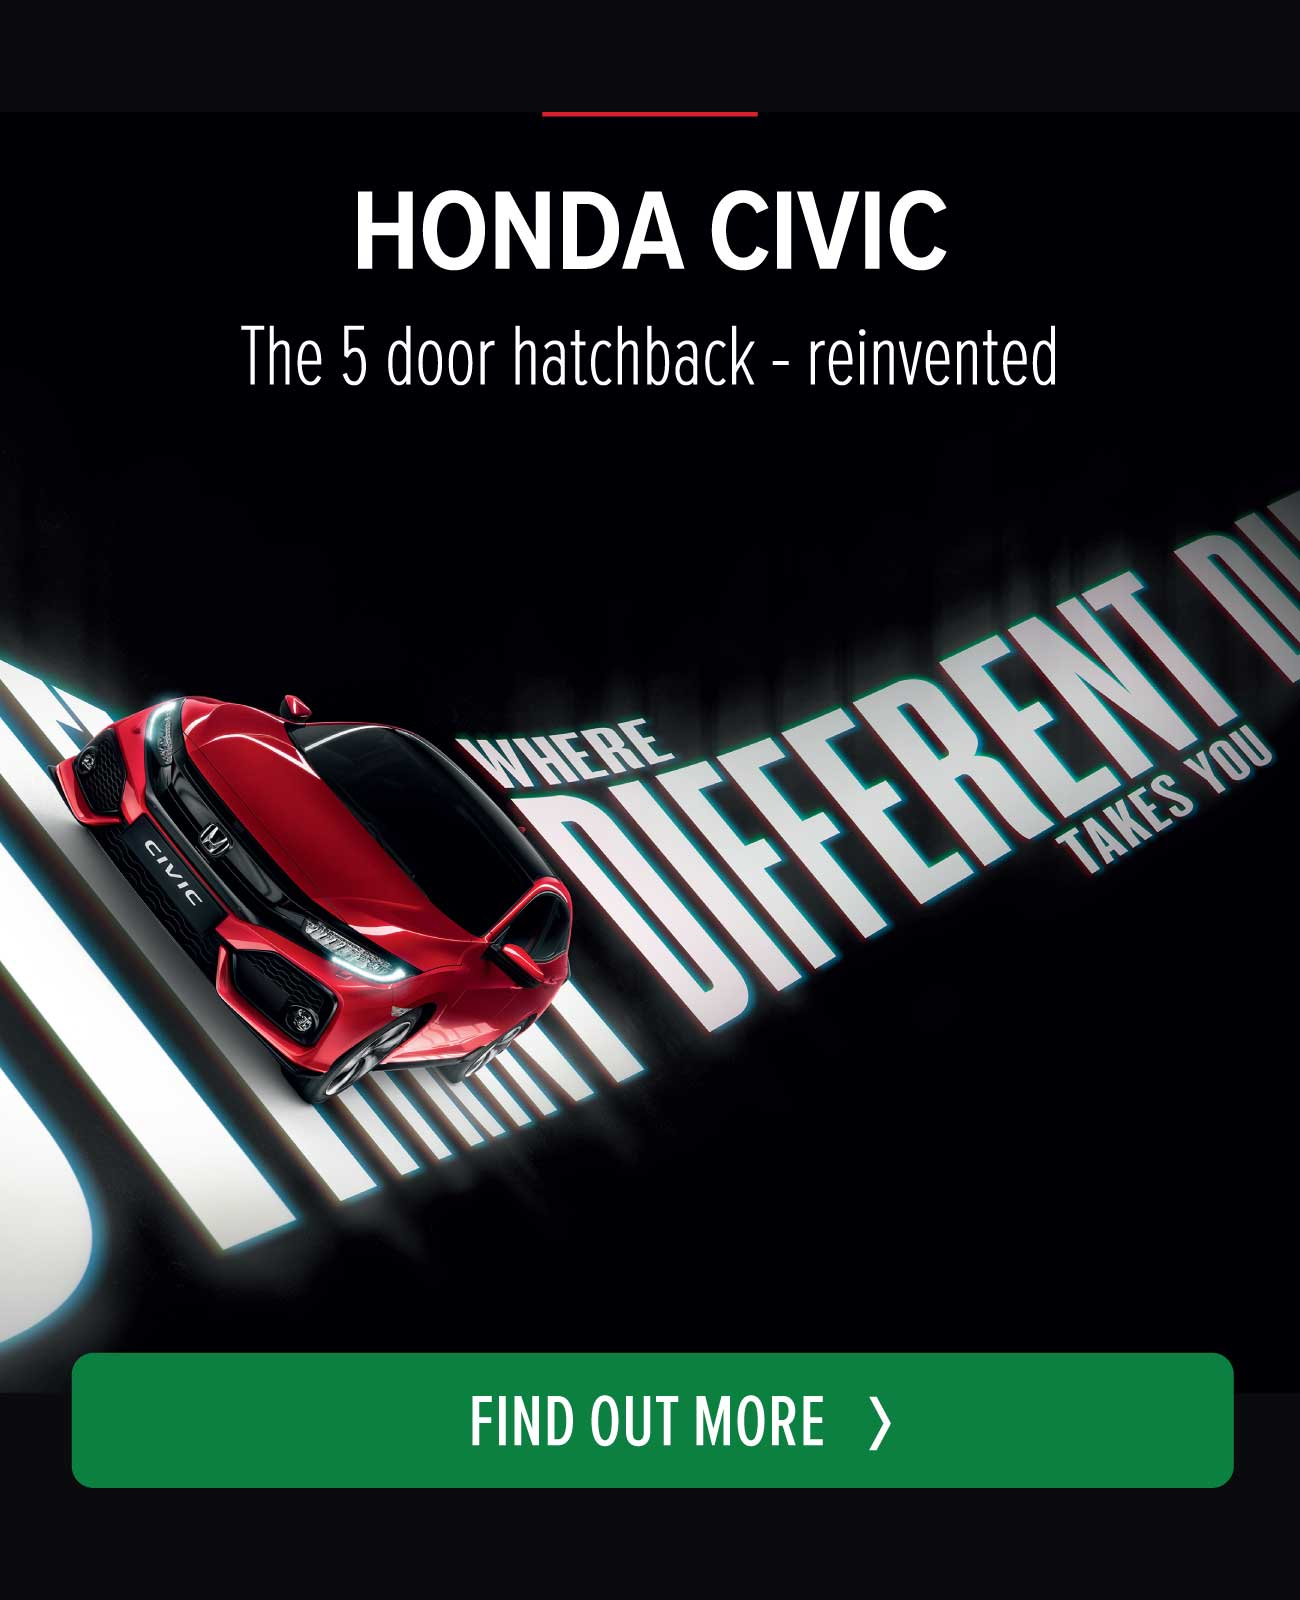 Honda Where Different Takes You